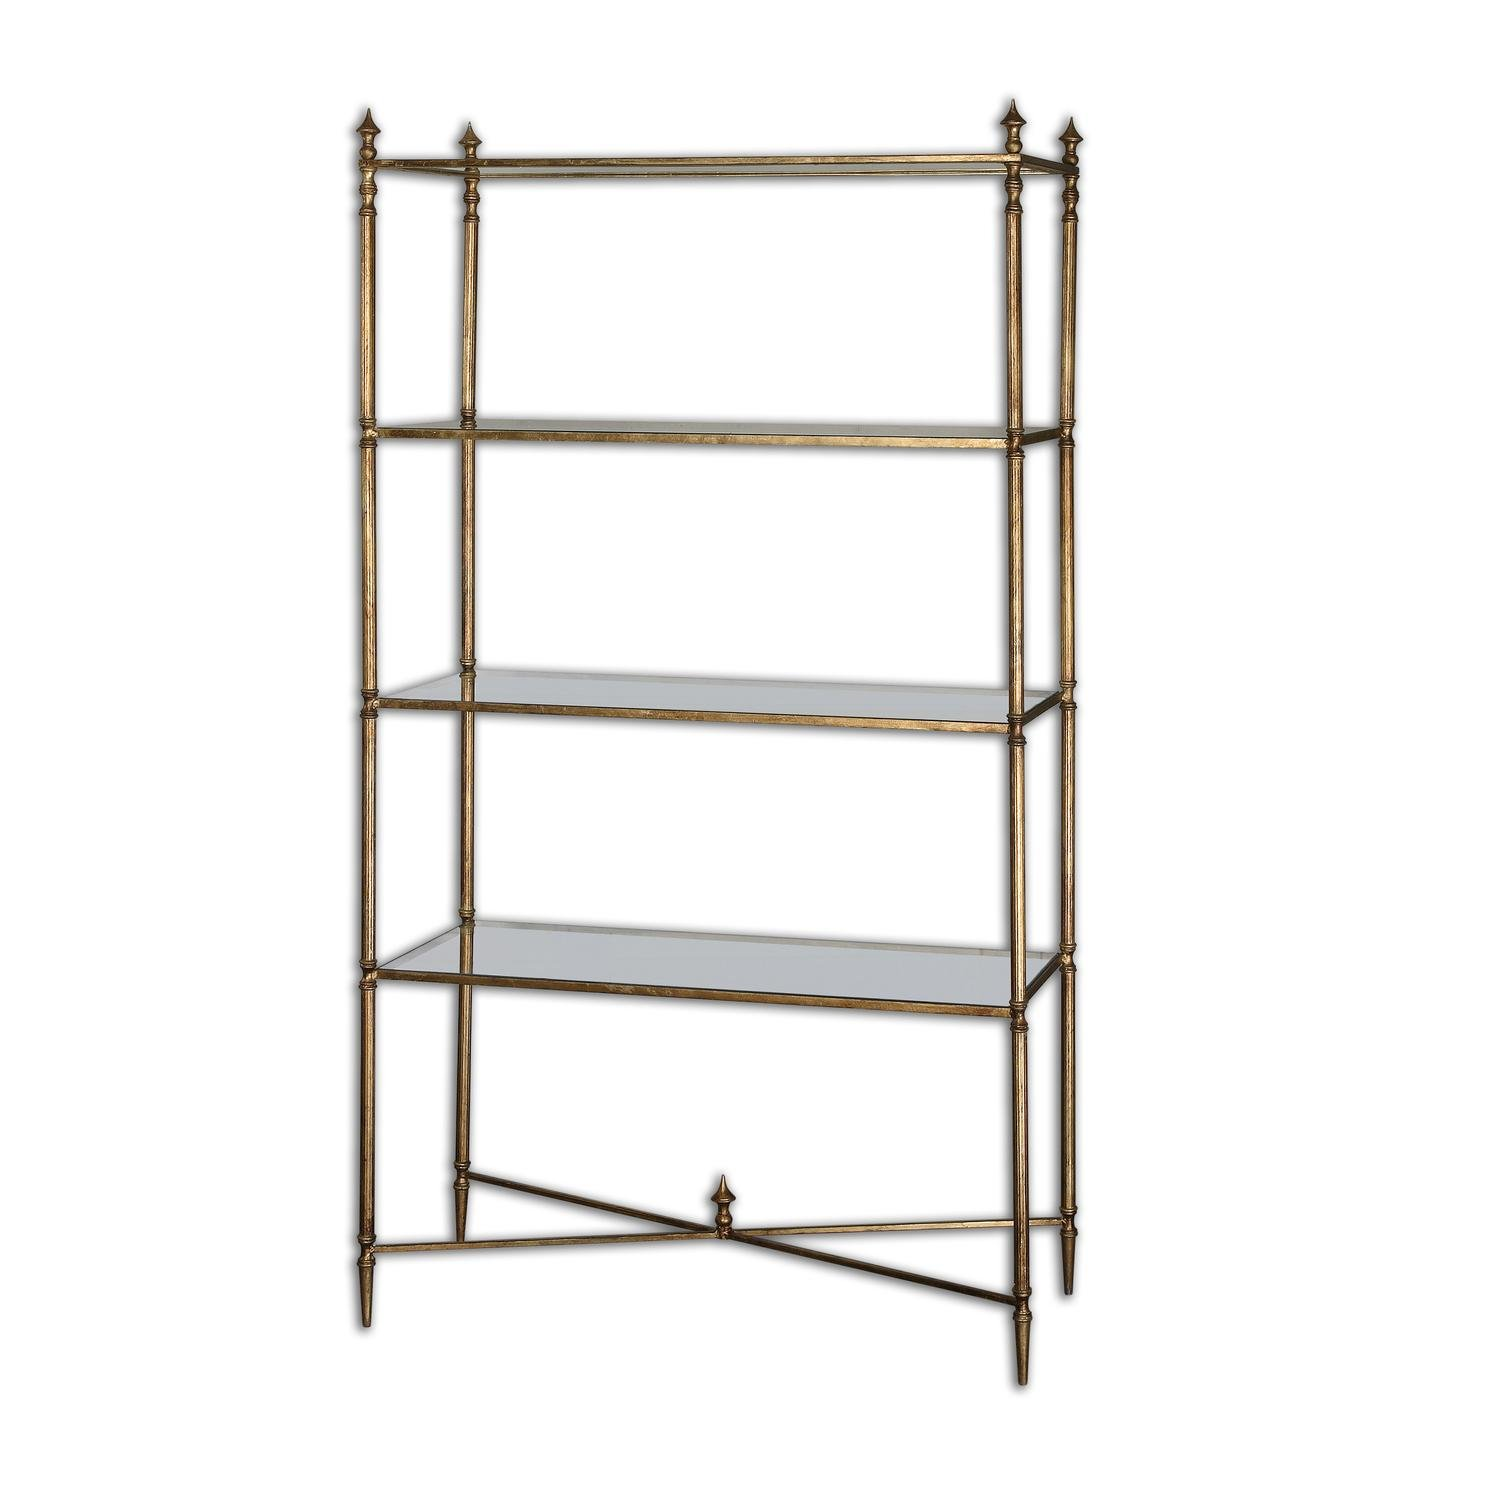 62'' Collier Antiqued Gold Leaf & Tempered Glass Etagere Display Shelves